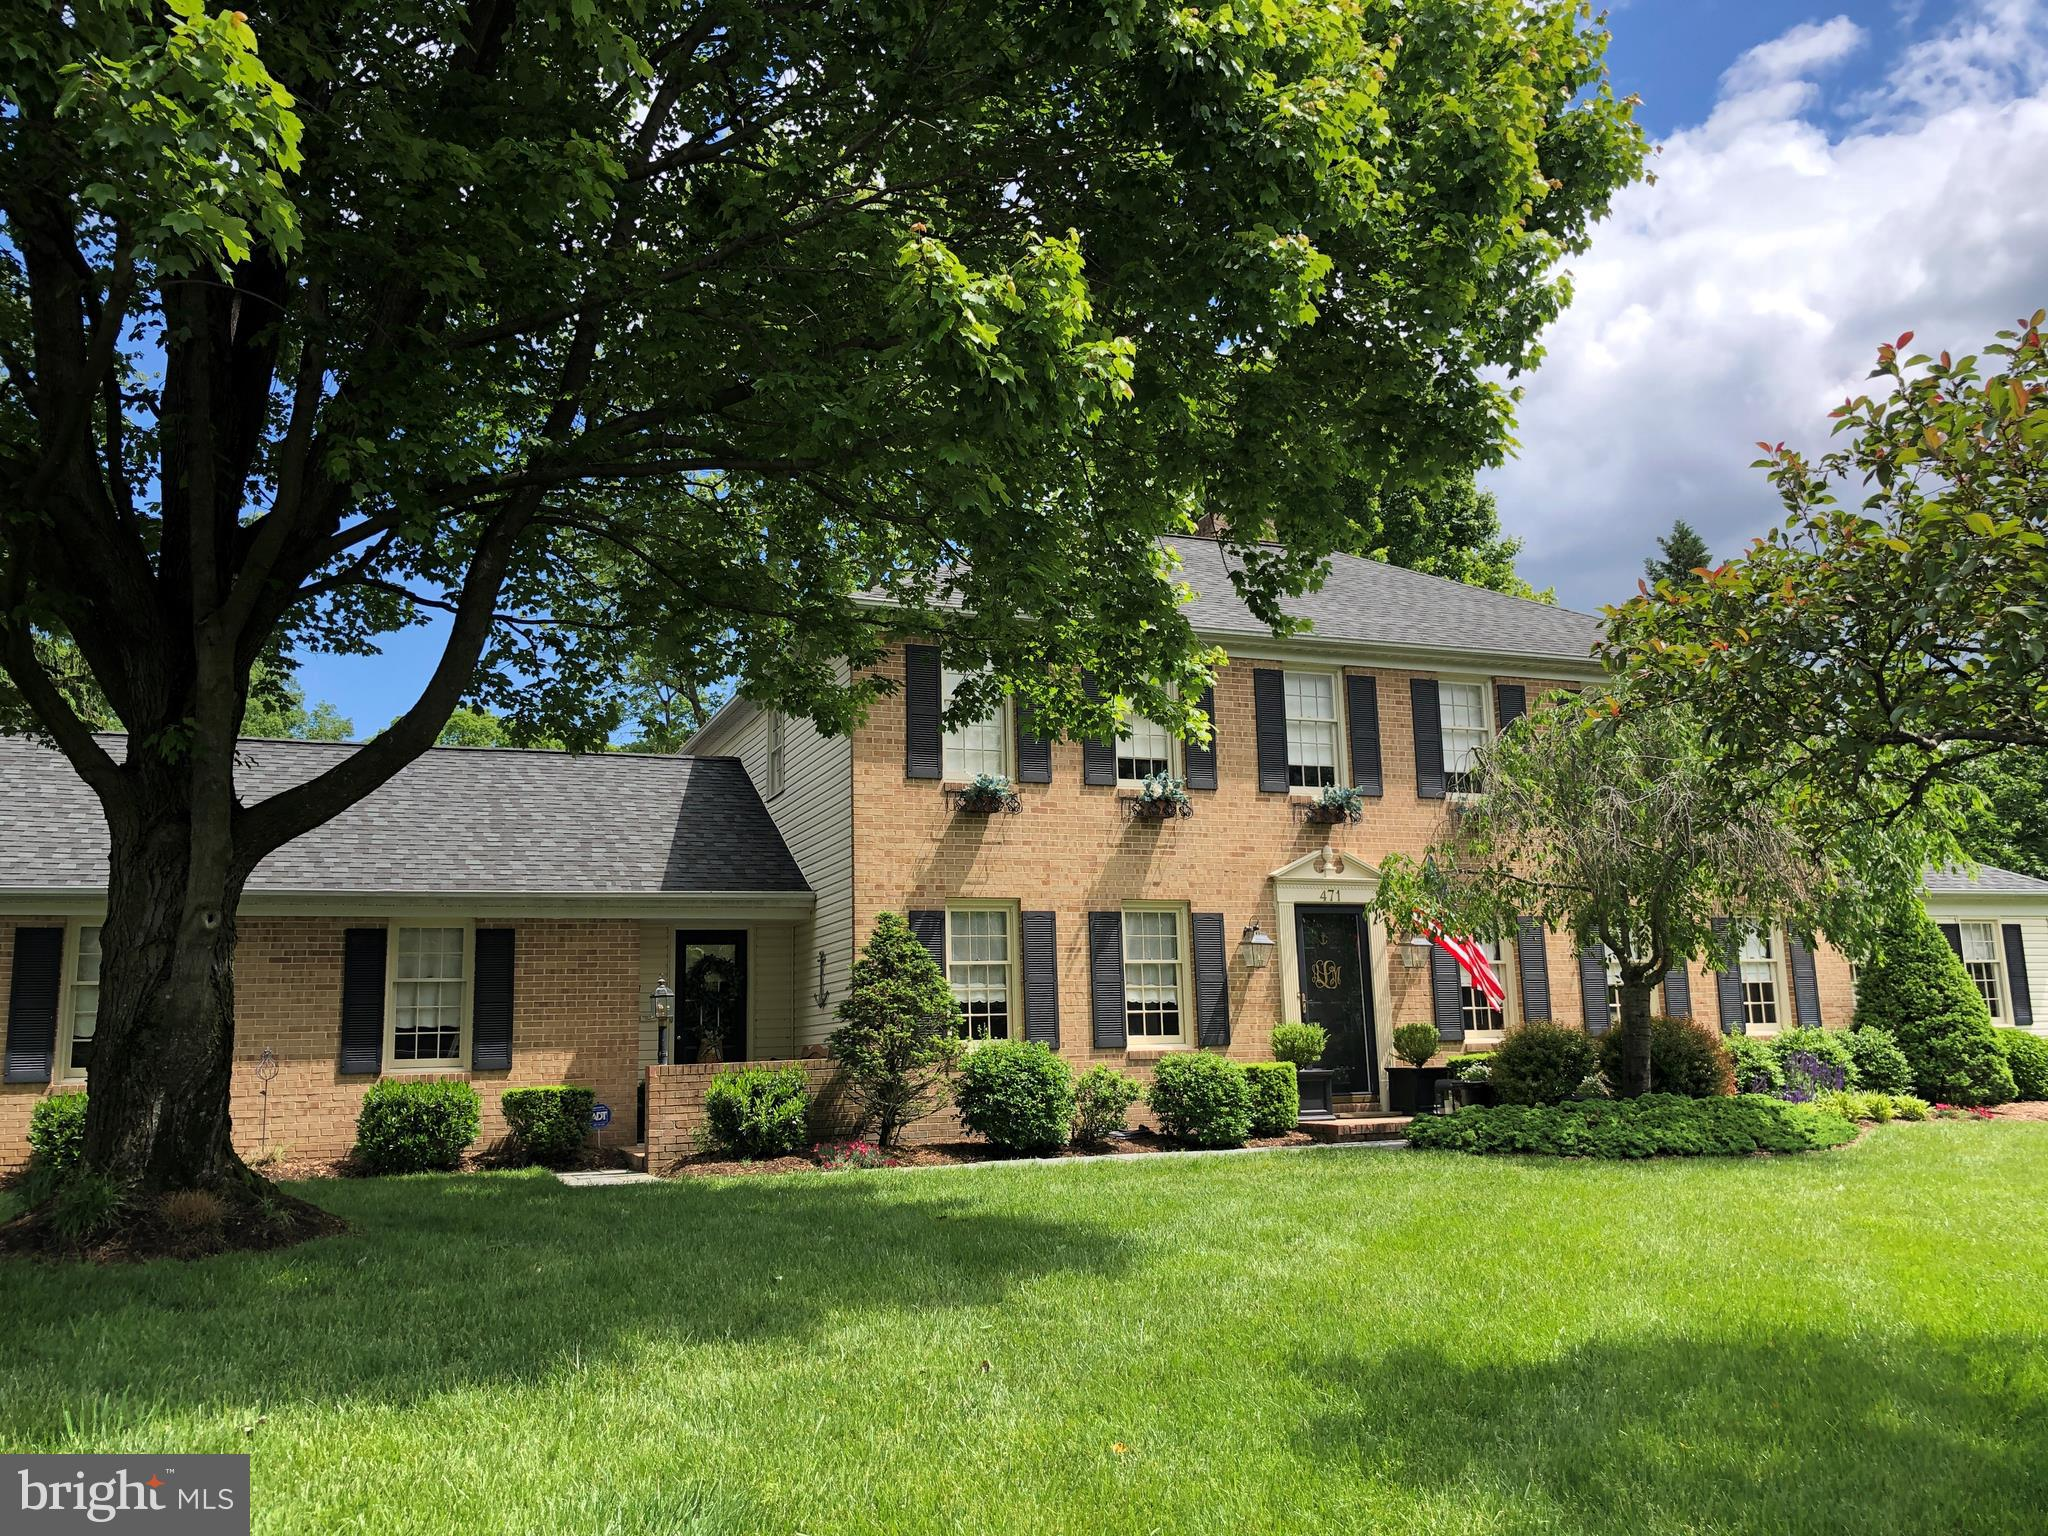 471 OLD ORCHARD CIRCLE, MILLERSVILLE, MD 21108